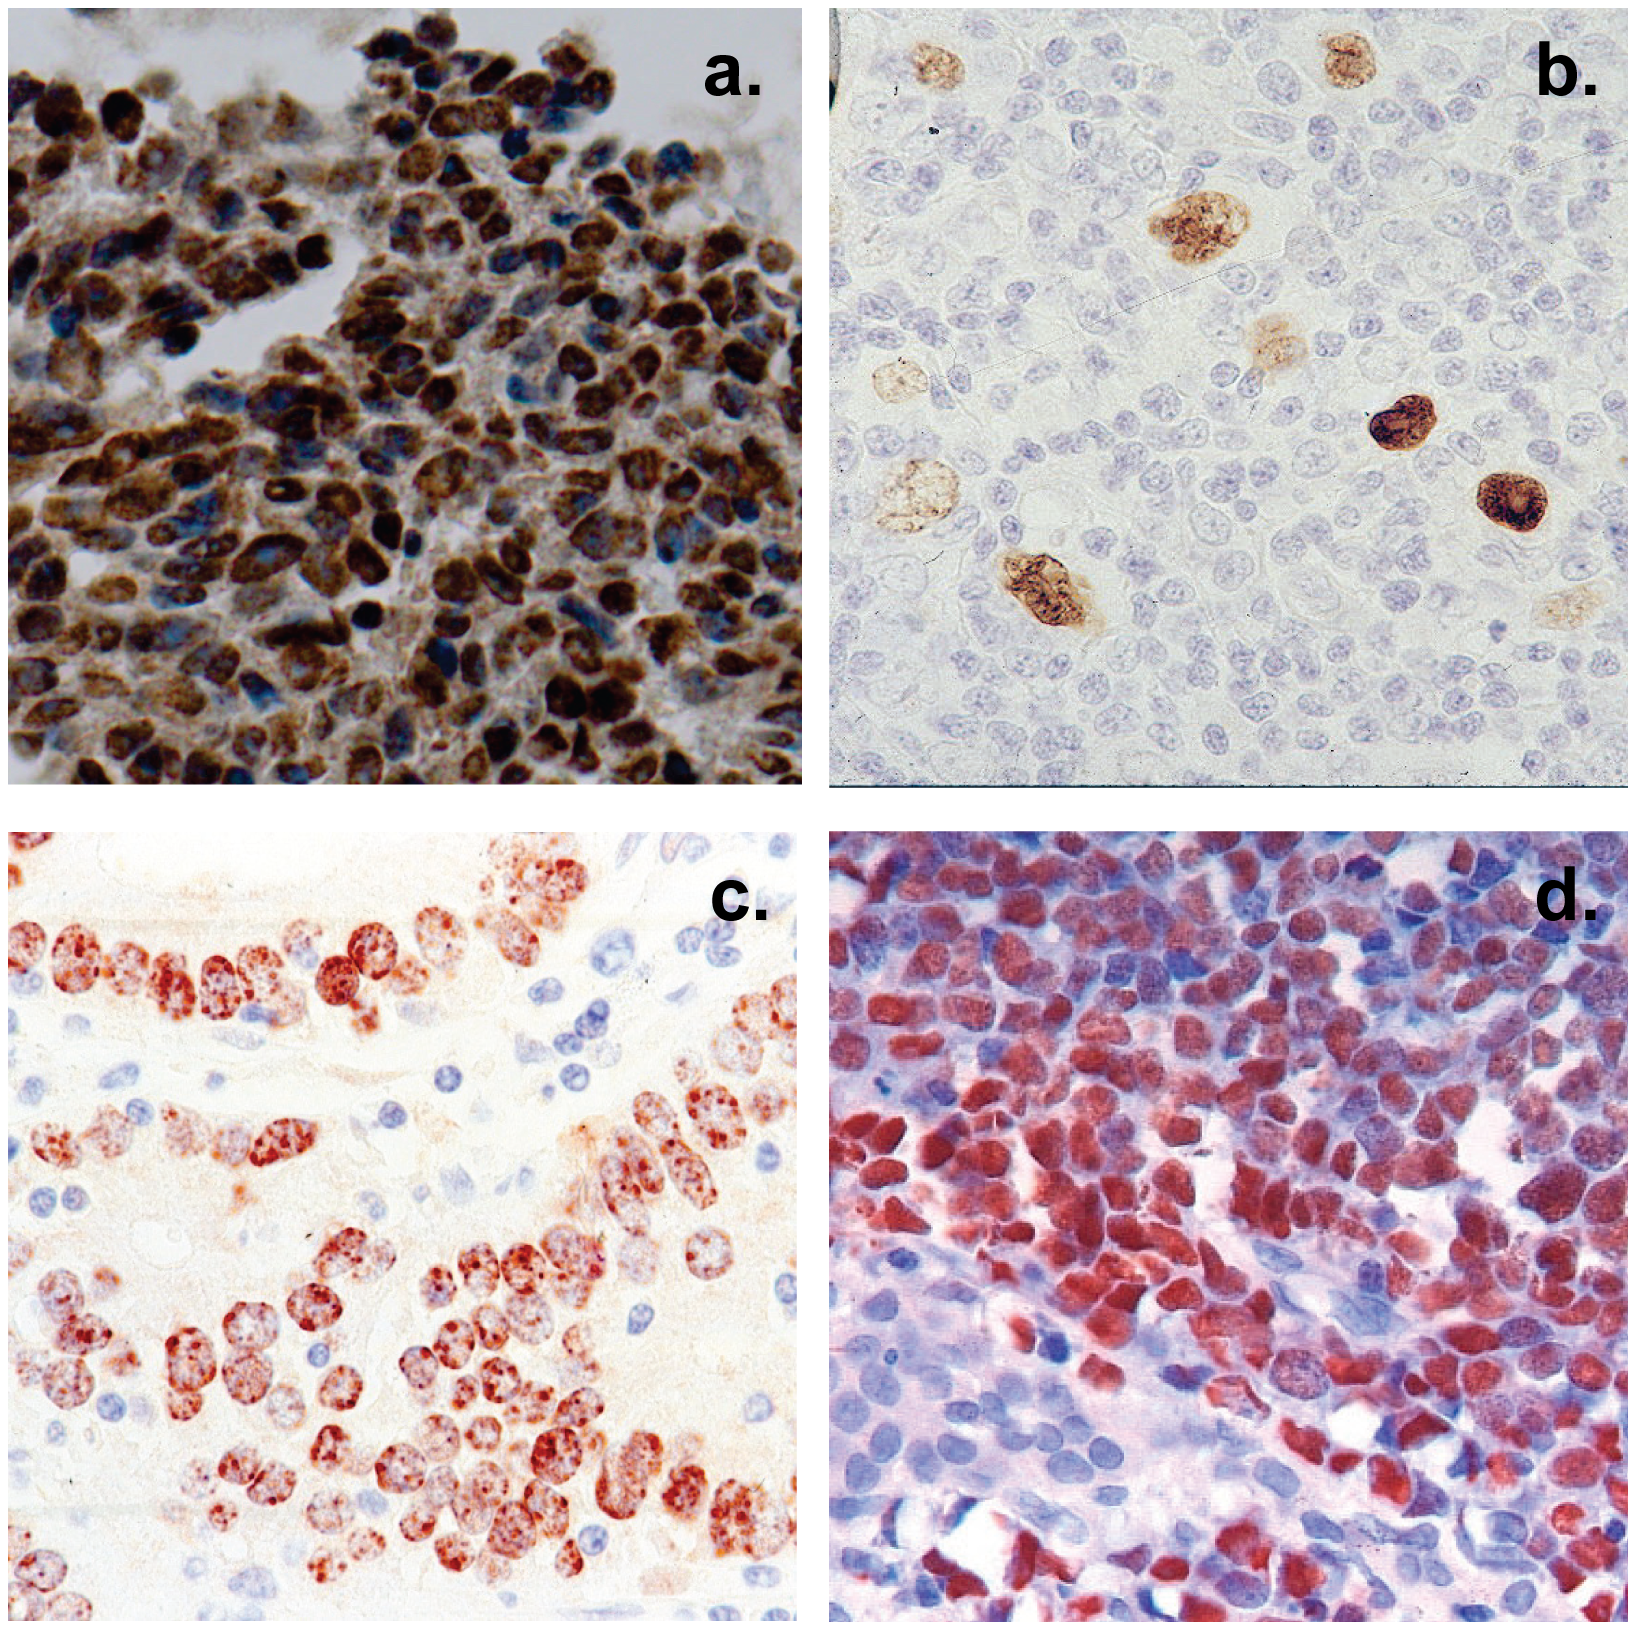 Histological cross sections of typical tumor biopsies used in this study stained for expression of EBV genes.